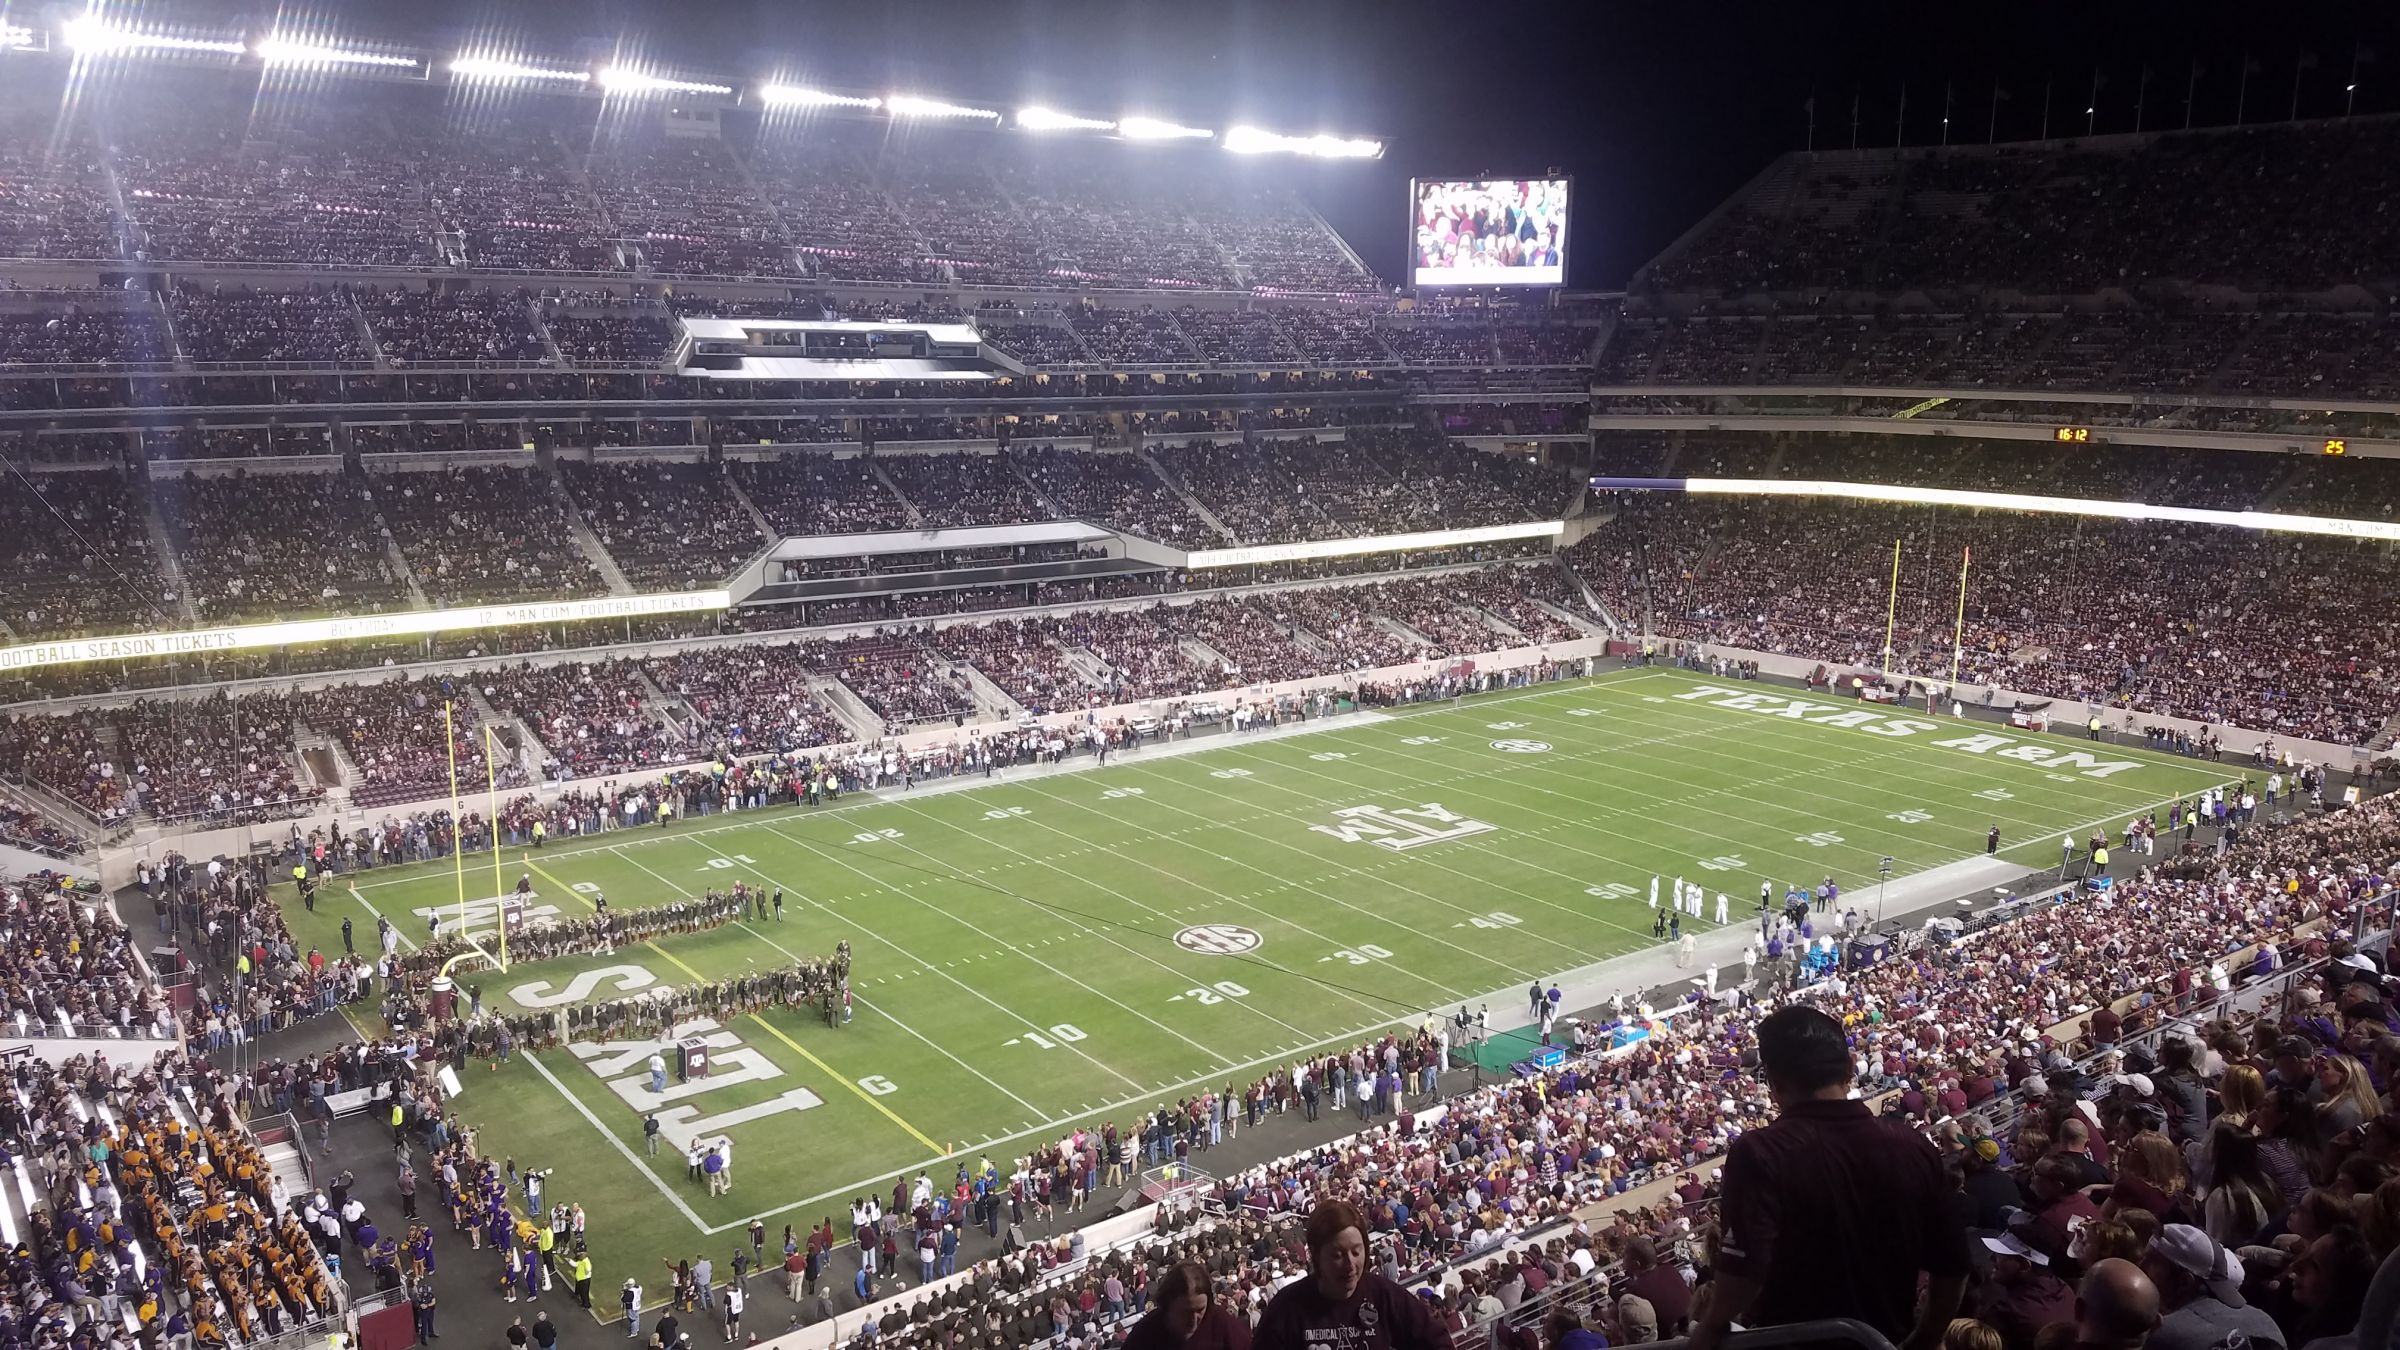 Section 340 seat view